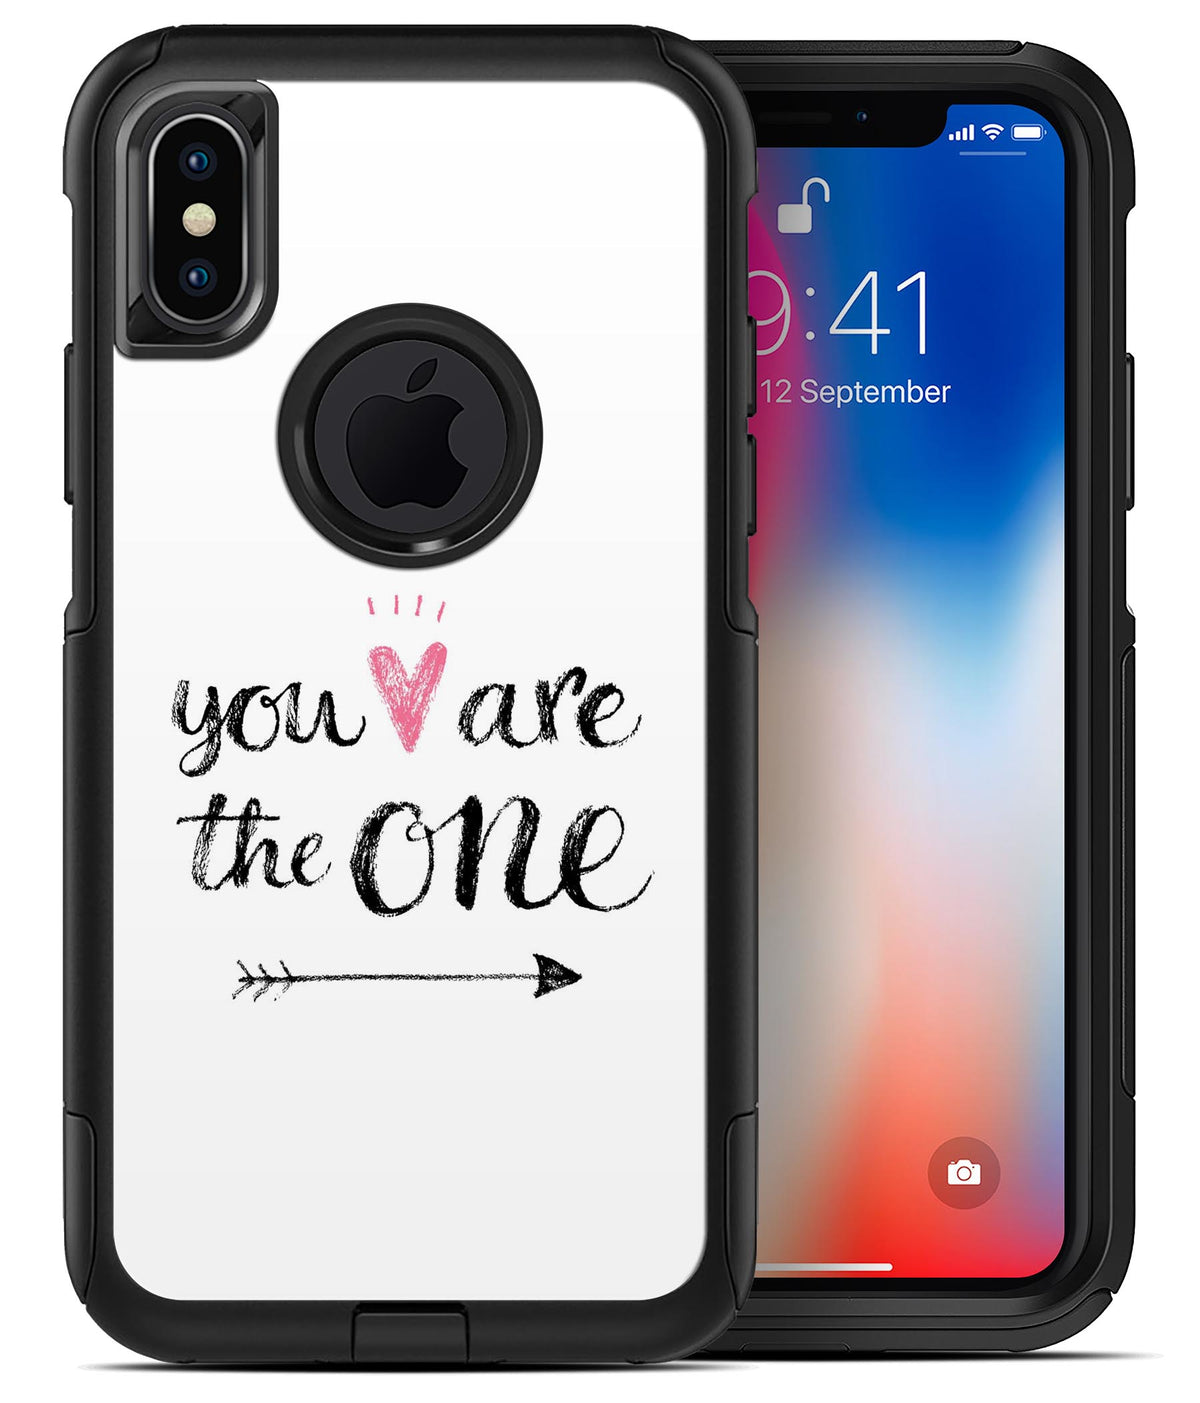 cheap for discount c9fa8 65a3b You are the One - iPhone X OtterBox Case & Skin Kits